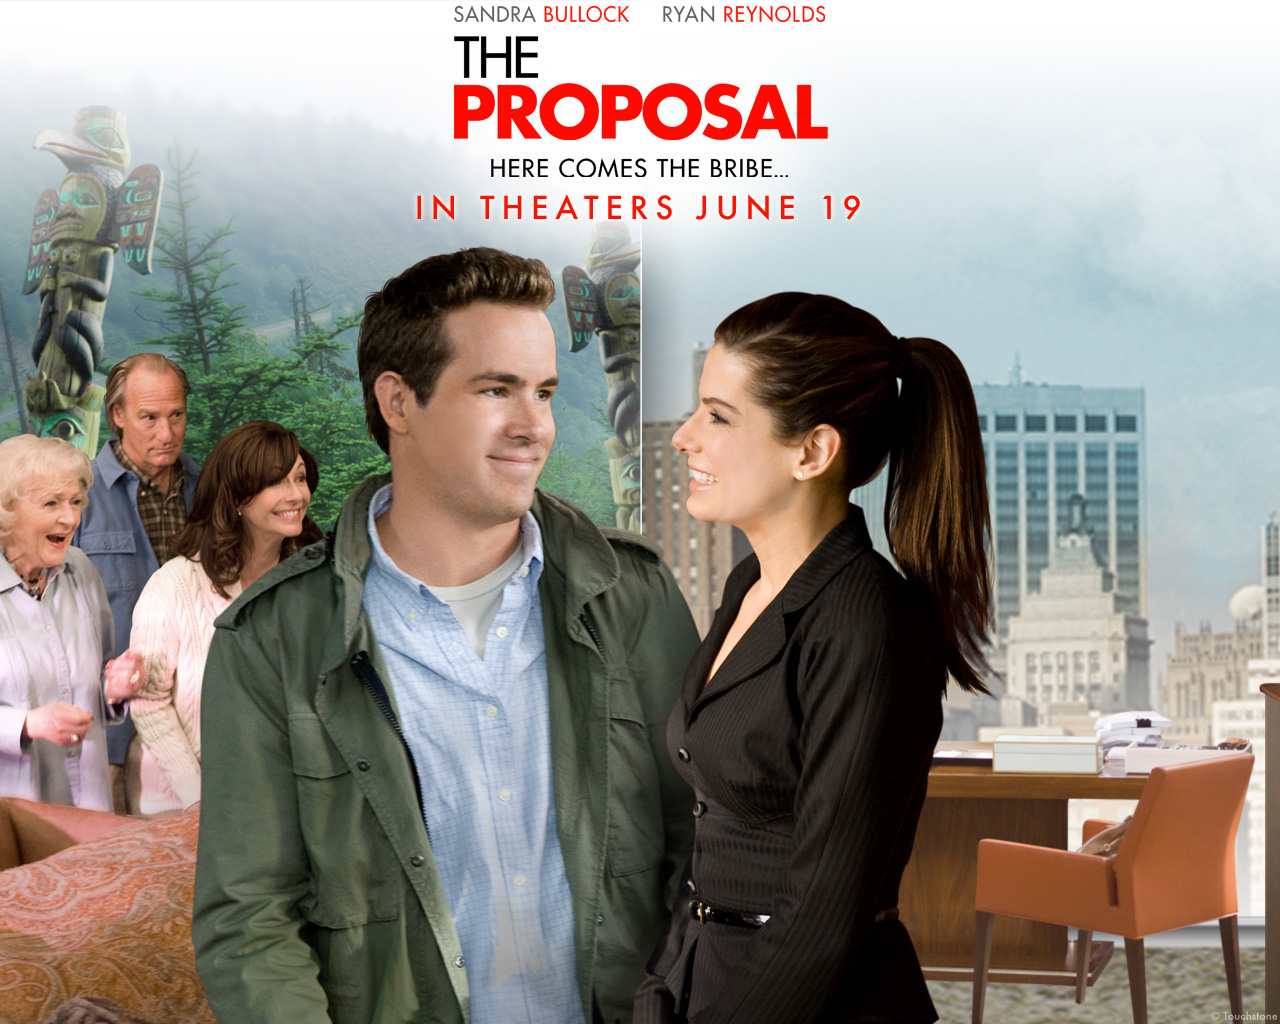 http://1.bp.blogspot.com/-L-pK8N0M85U/TlR4EM6aa4I/AAAAAAAAAlI/AdjHP4J1Wps/s1600/Ryan_Reynolds_in_The_Proposal_Wallpaper_2_1280.jpg